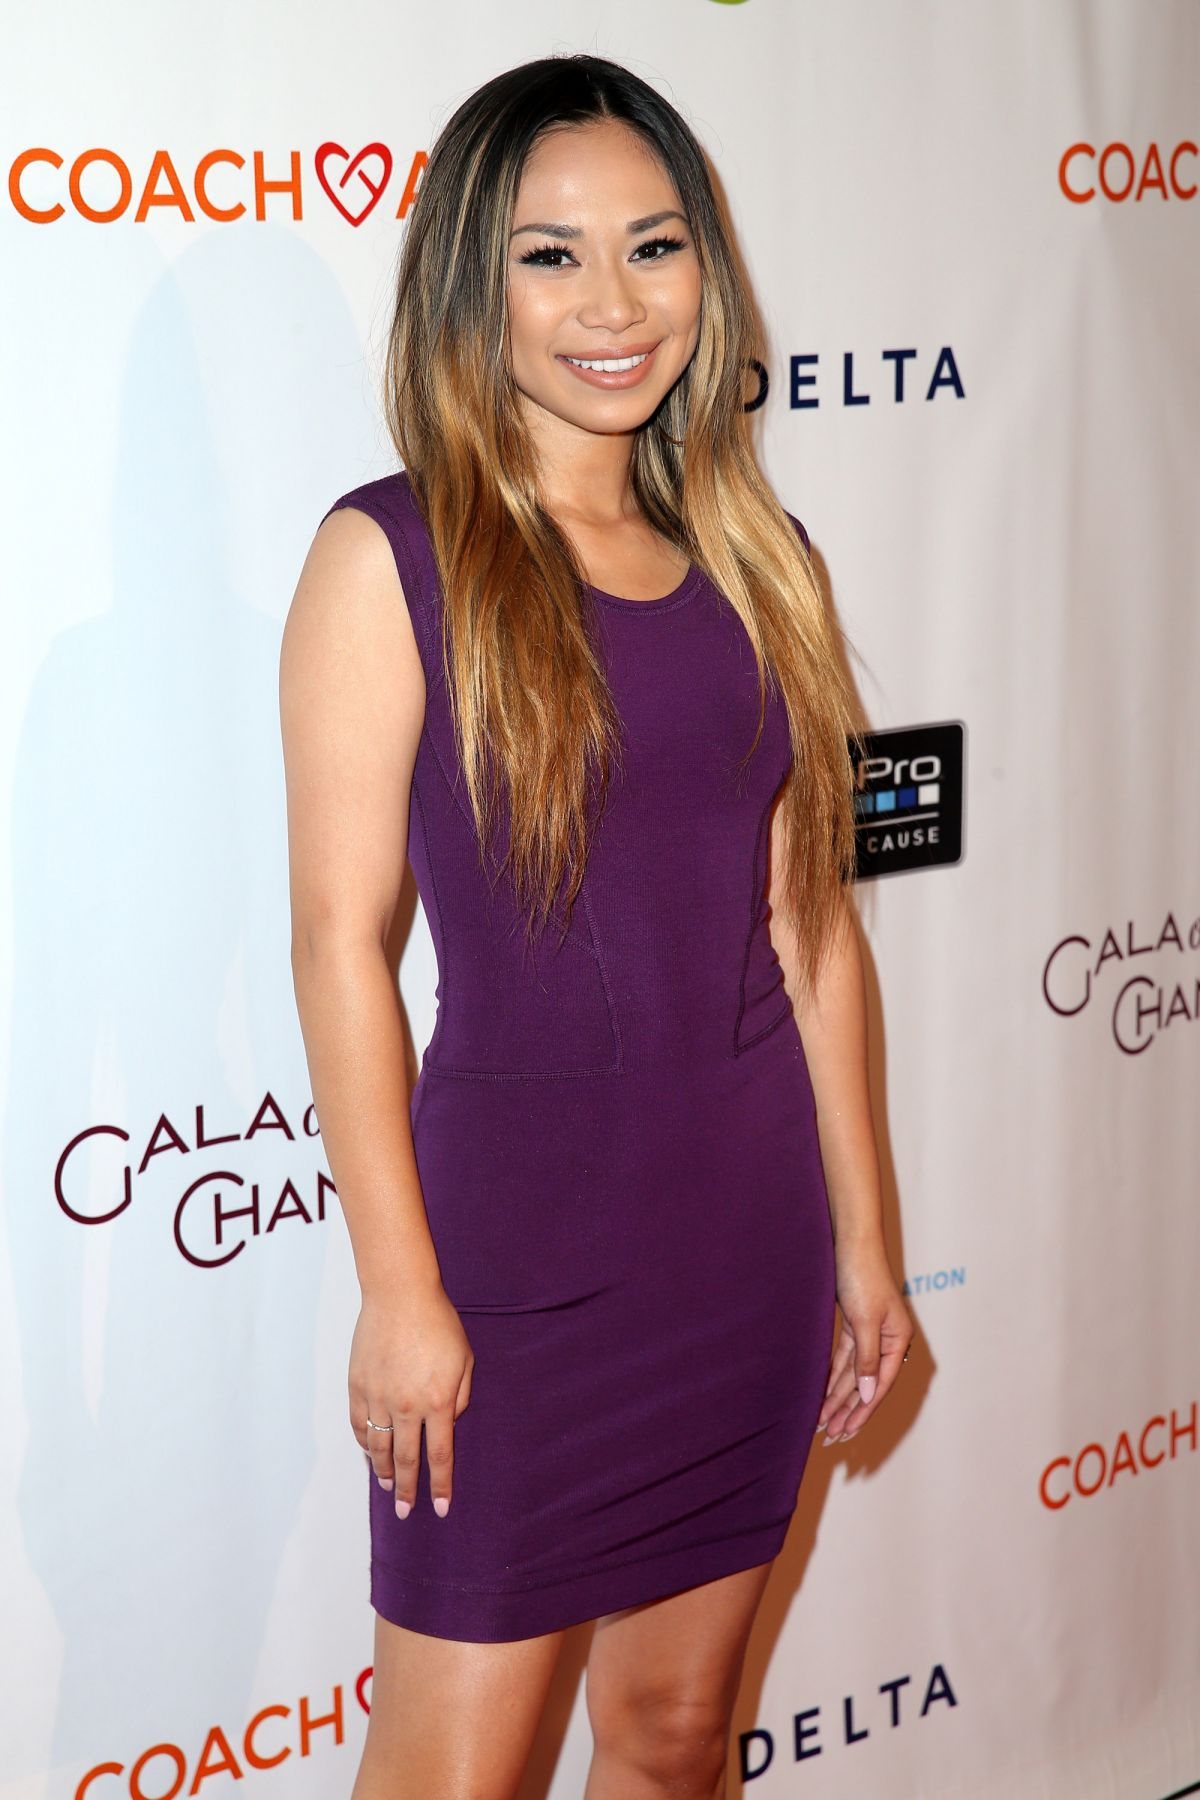 JESSICA SANCHEZ at Coachart Gala of Champions in Beverly Hills 10/15/2015